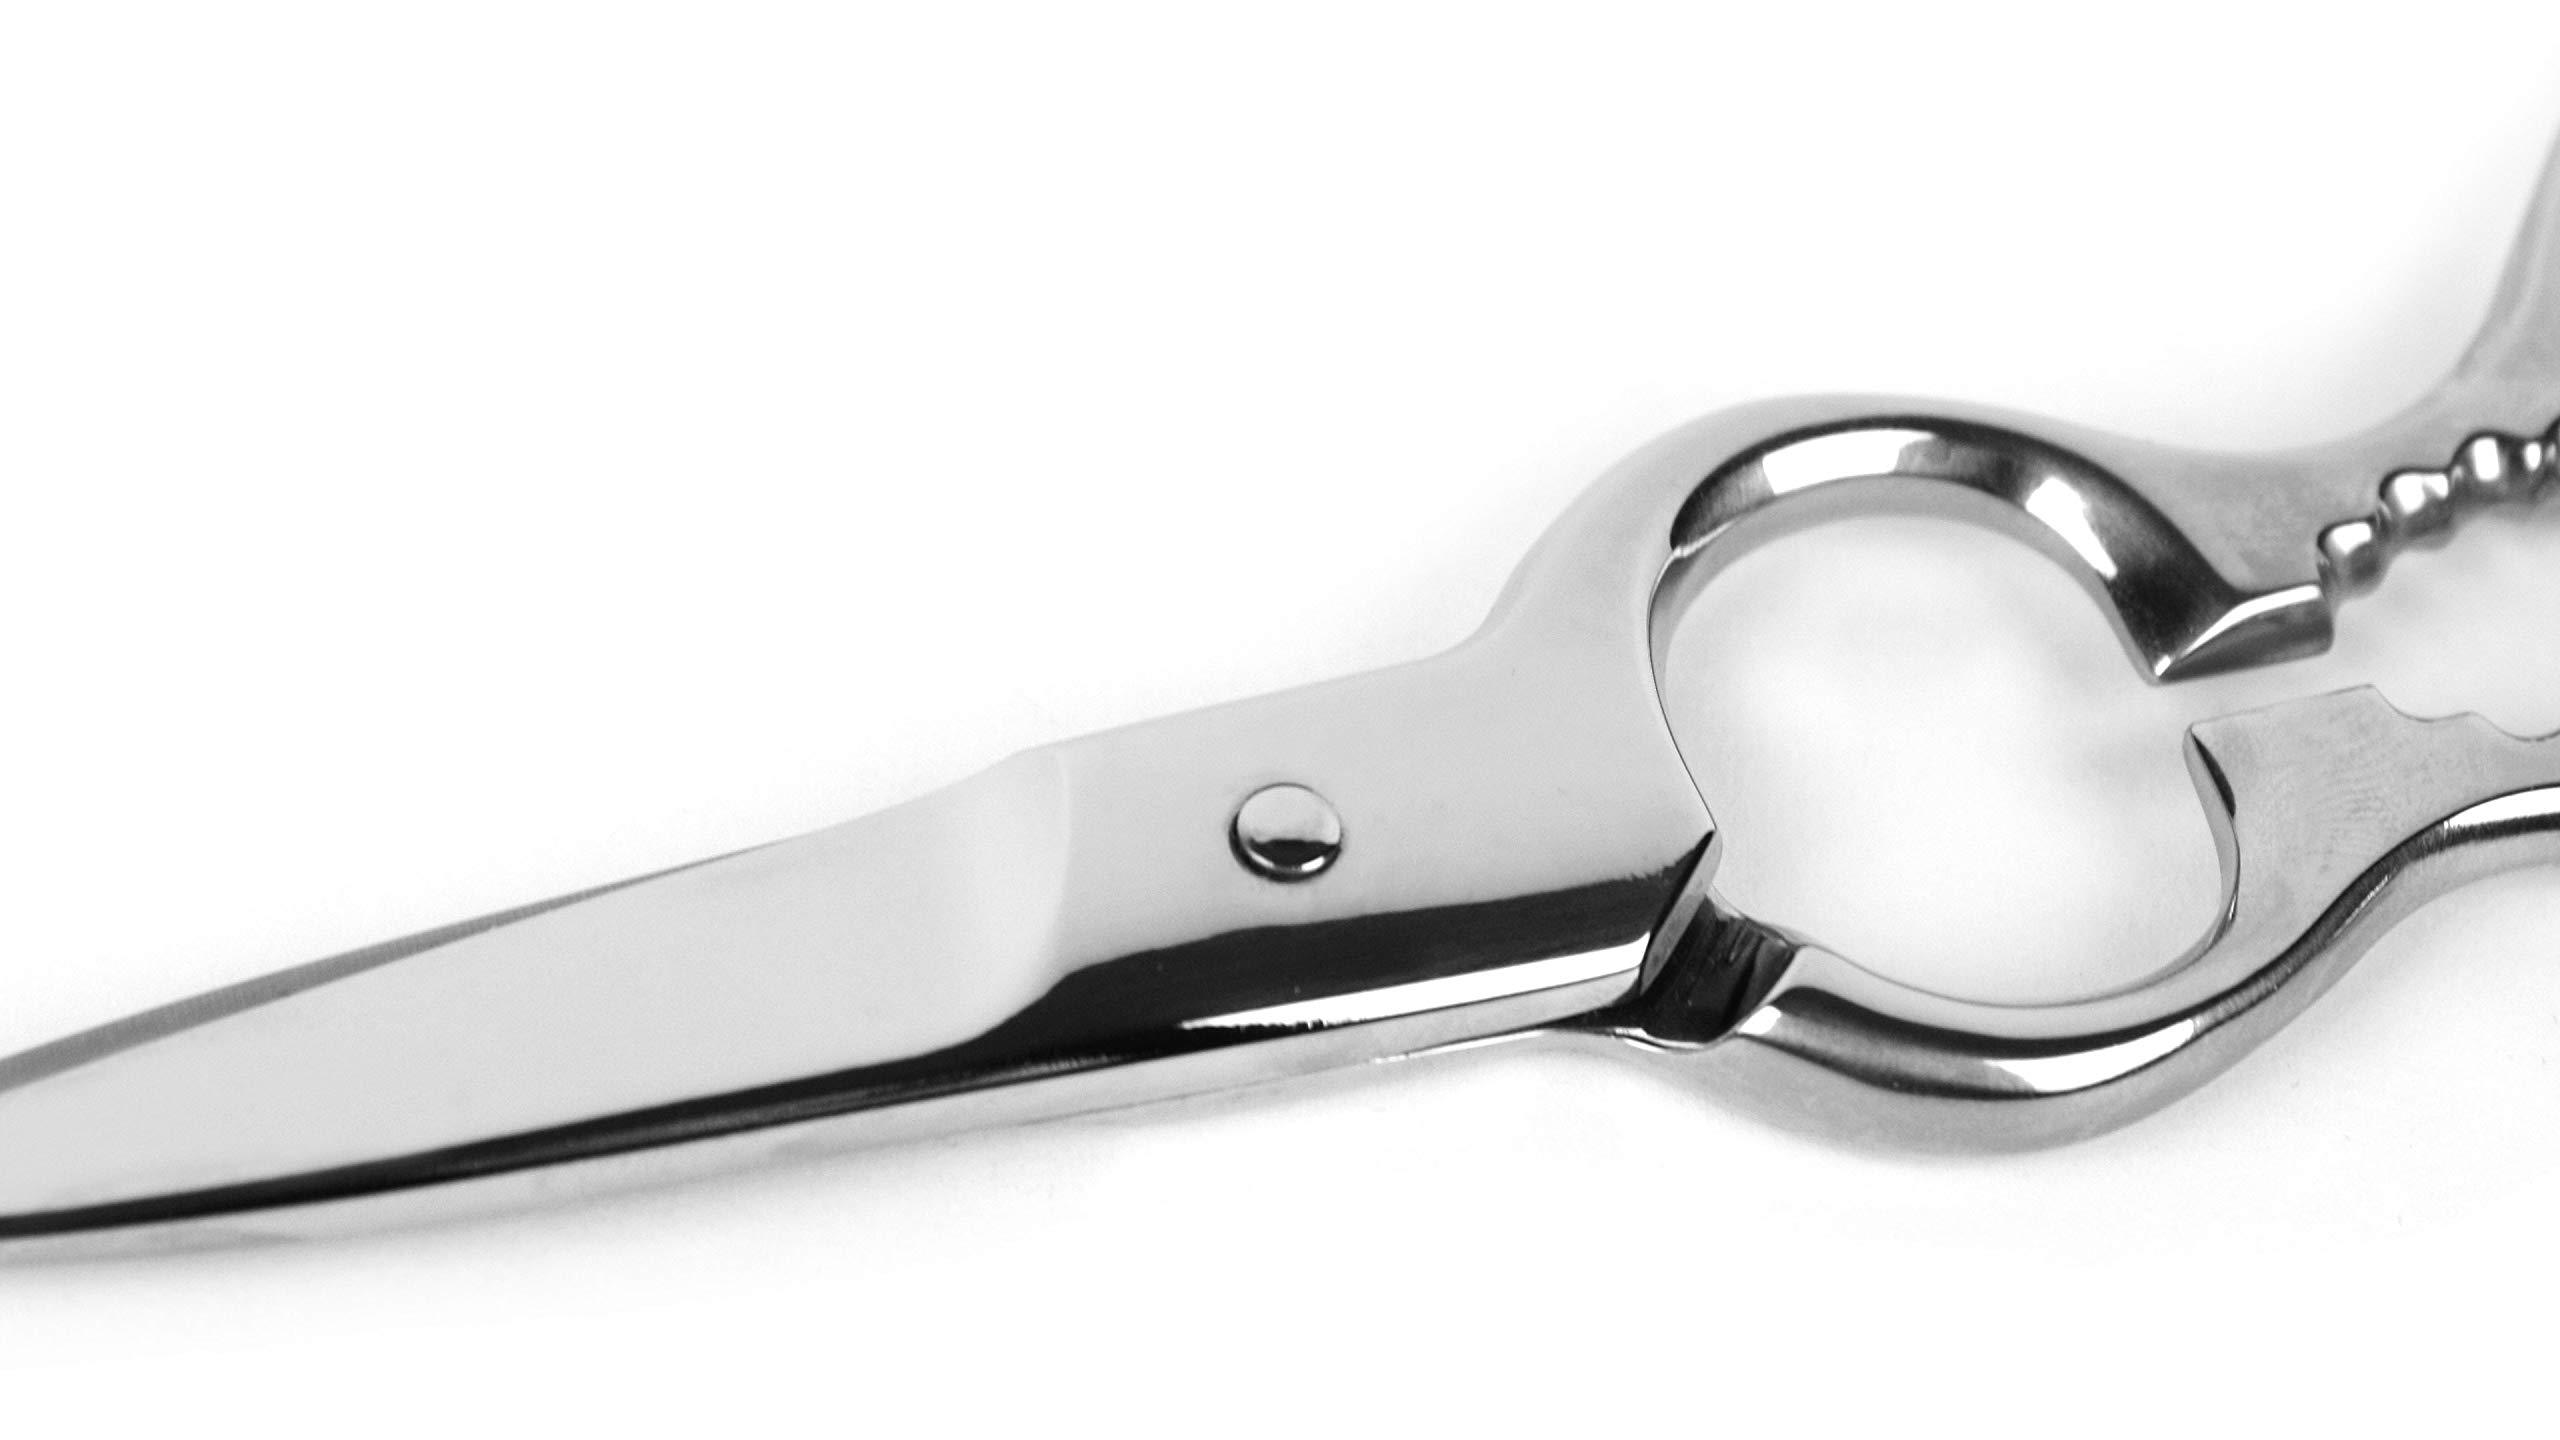 Enso Kitchen Shears - Made in Japan - Multipurpose Take-Apart Forged Stainless Steel Scissors by Enso (Image #6)